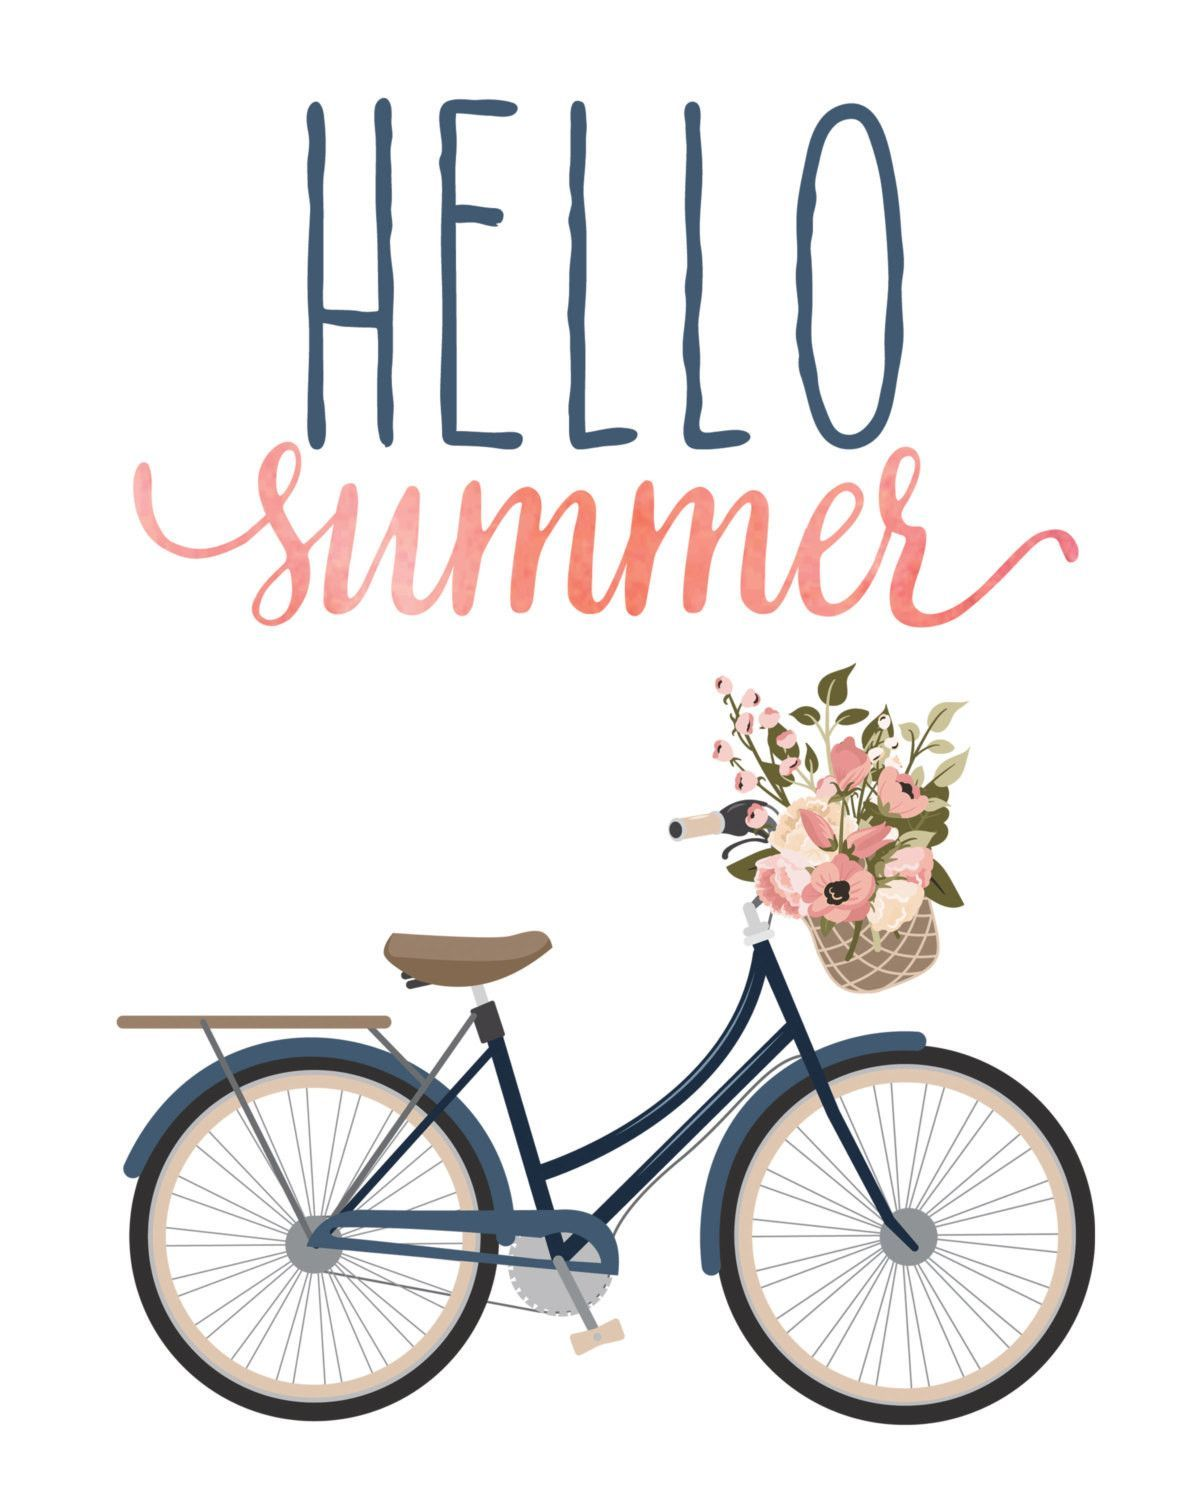 Hello Summer. :-) It is created with a lovely 68 lb. acid-free paper and archival inks. Click here to purchase frame.